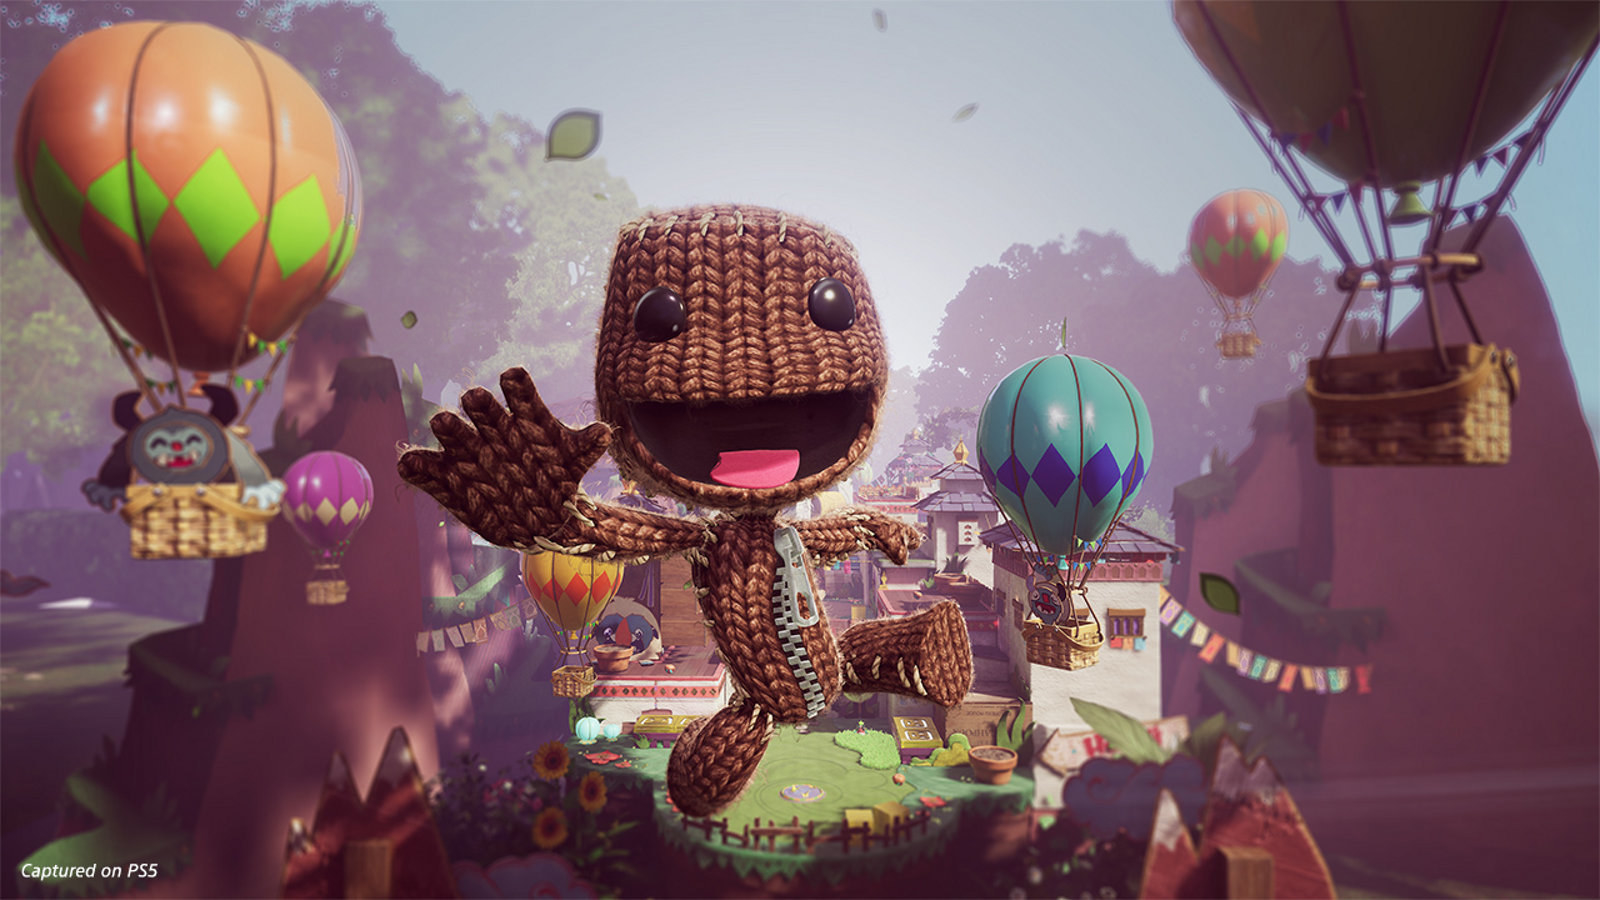 An adorable little knit character jumps excitedly through an animated world and surrounded by hot air balloons